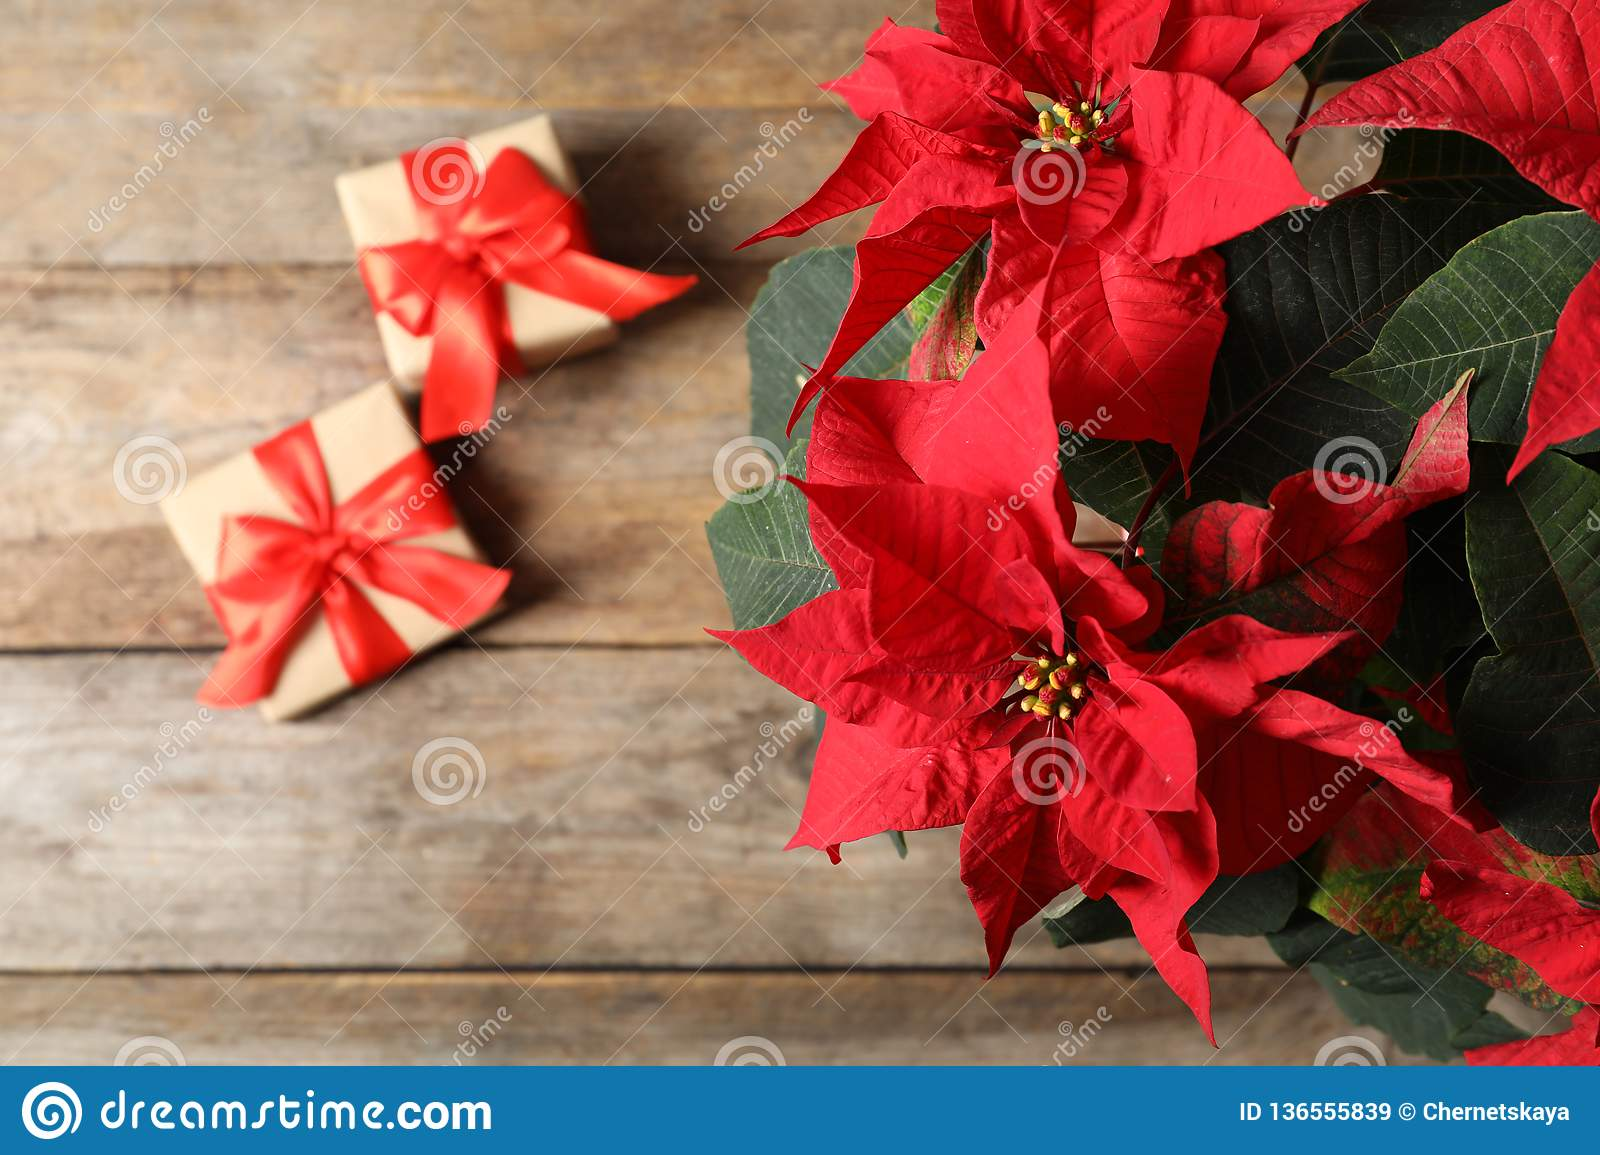 Poinsettia Traditional Christmas Flower With Gift Boxes On Wooden Table Stock Image Image Of Beautiful Copy 136555839